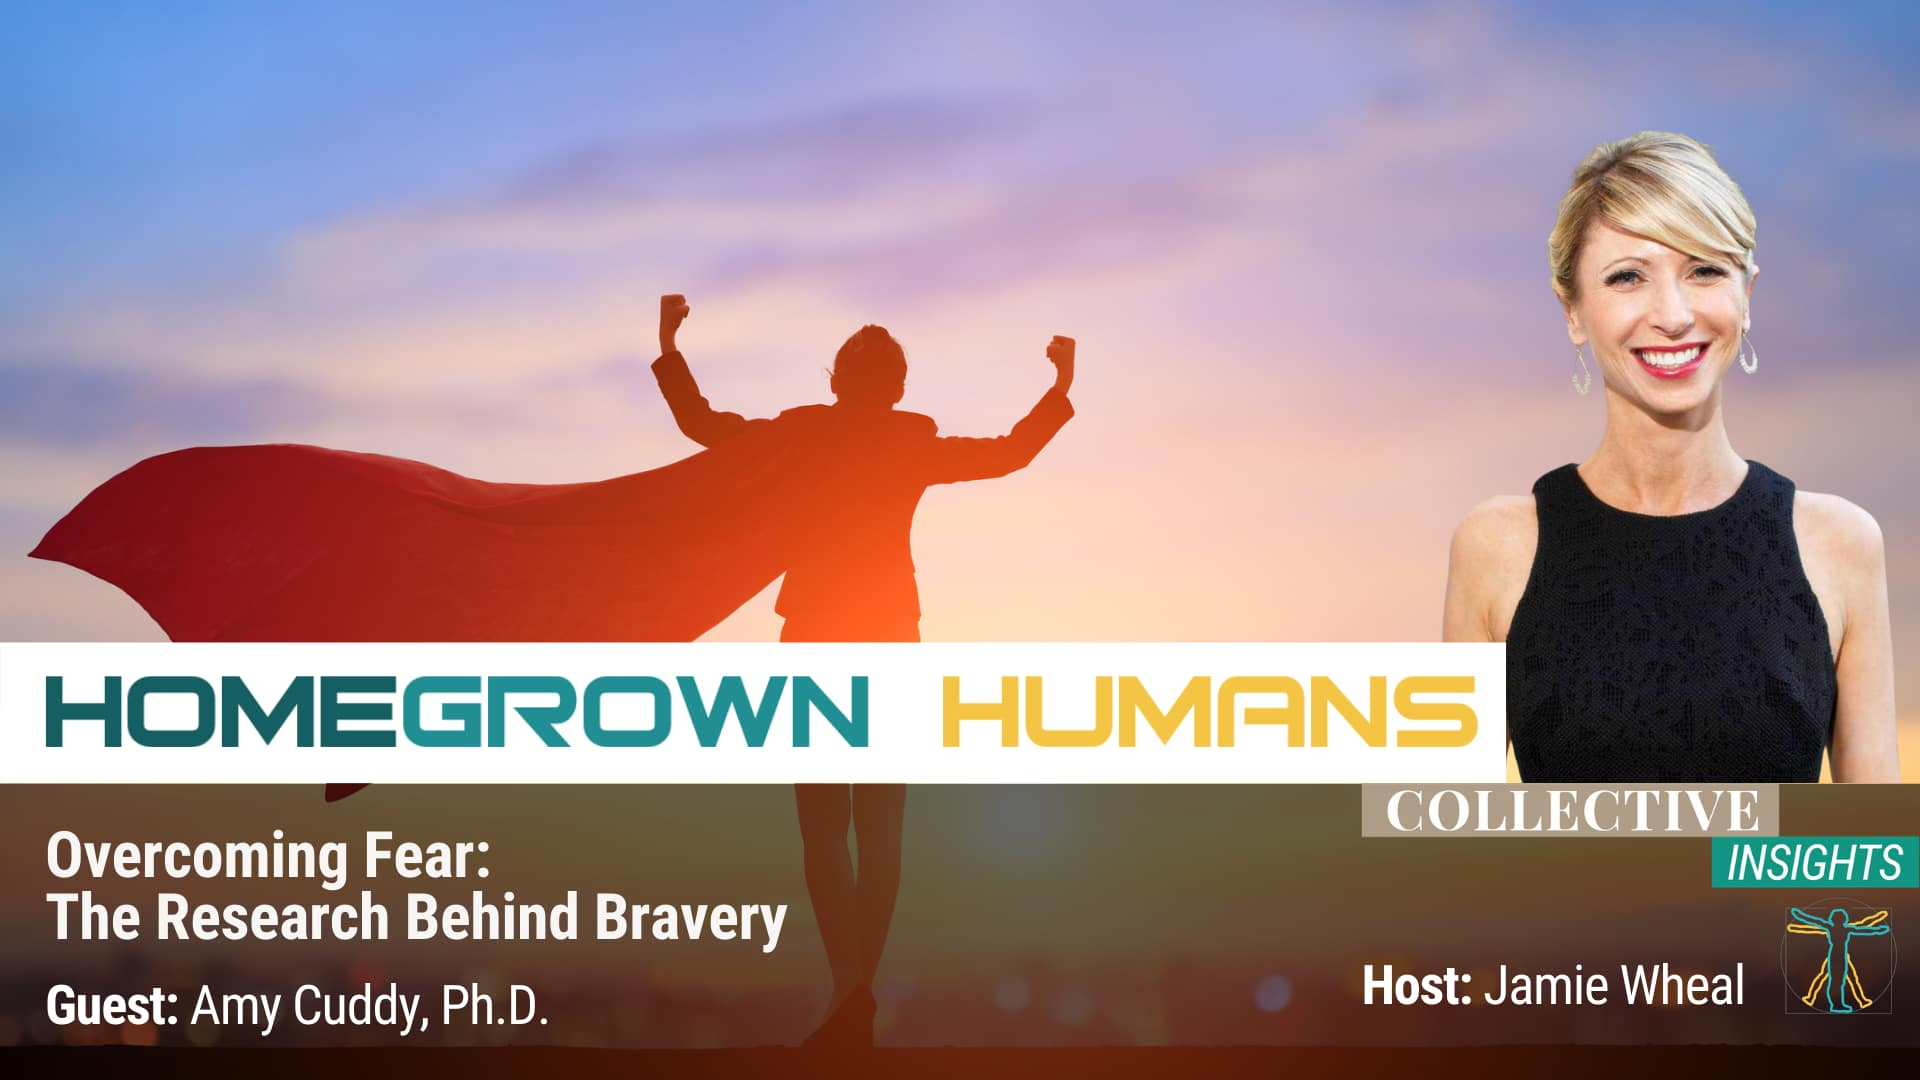 HomeGrown Humans - Amy Cuddy, Ph.D. - Embodiment